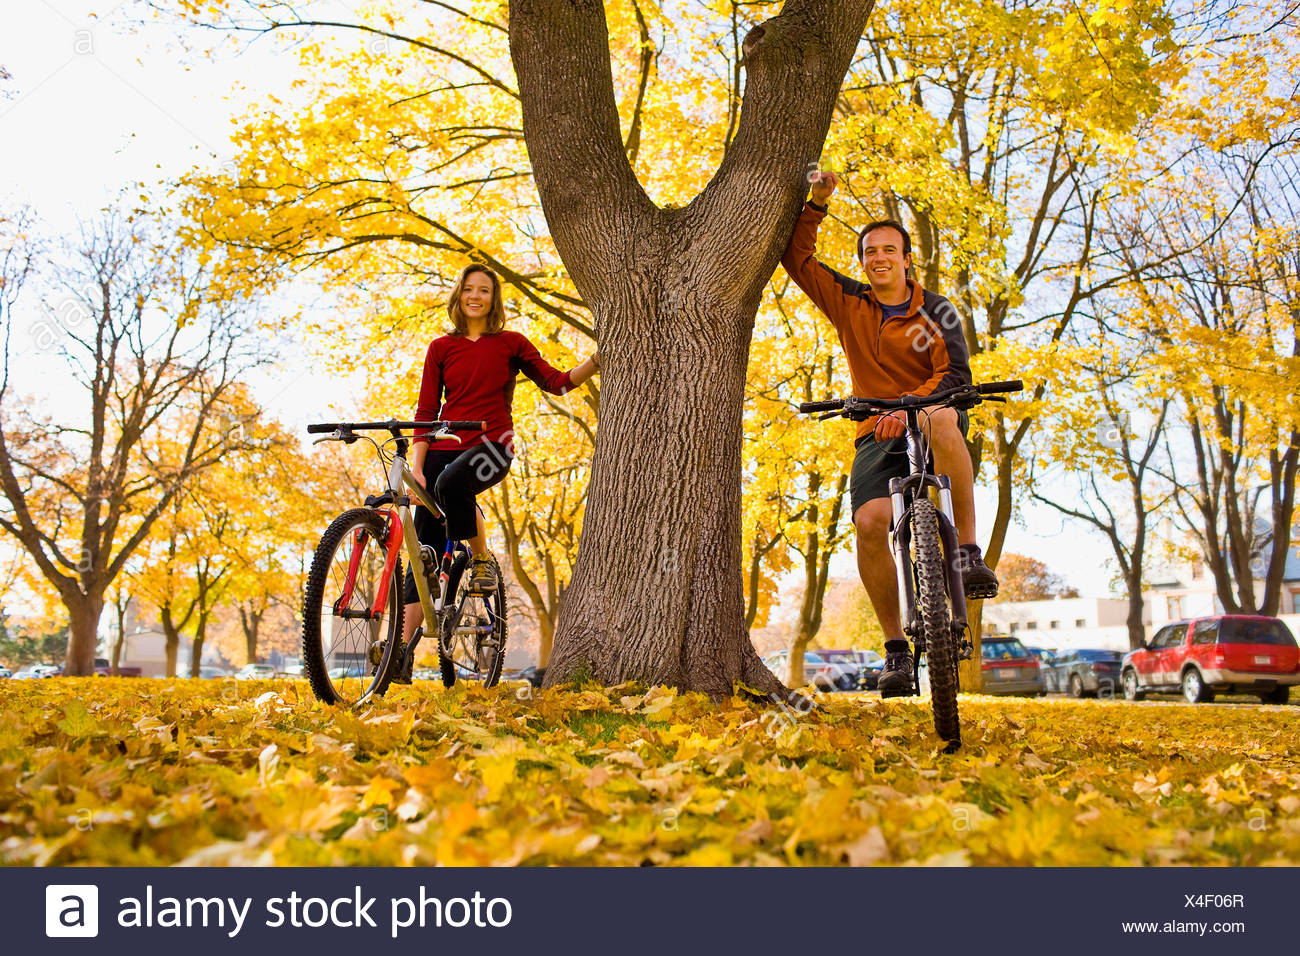 USA, Montana, Kalispell, Portrait of couple at bikes in park - Stock Image